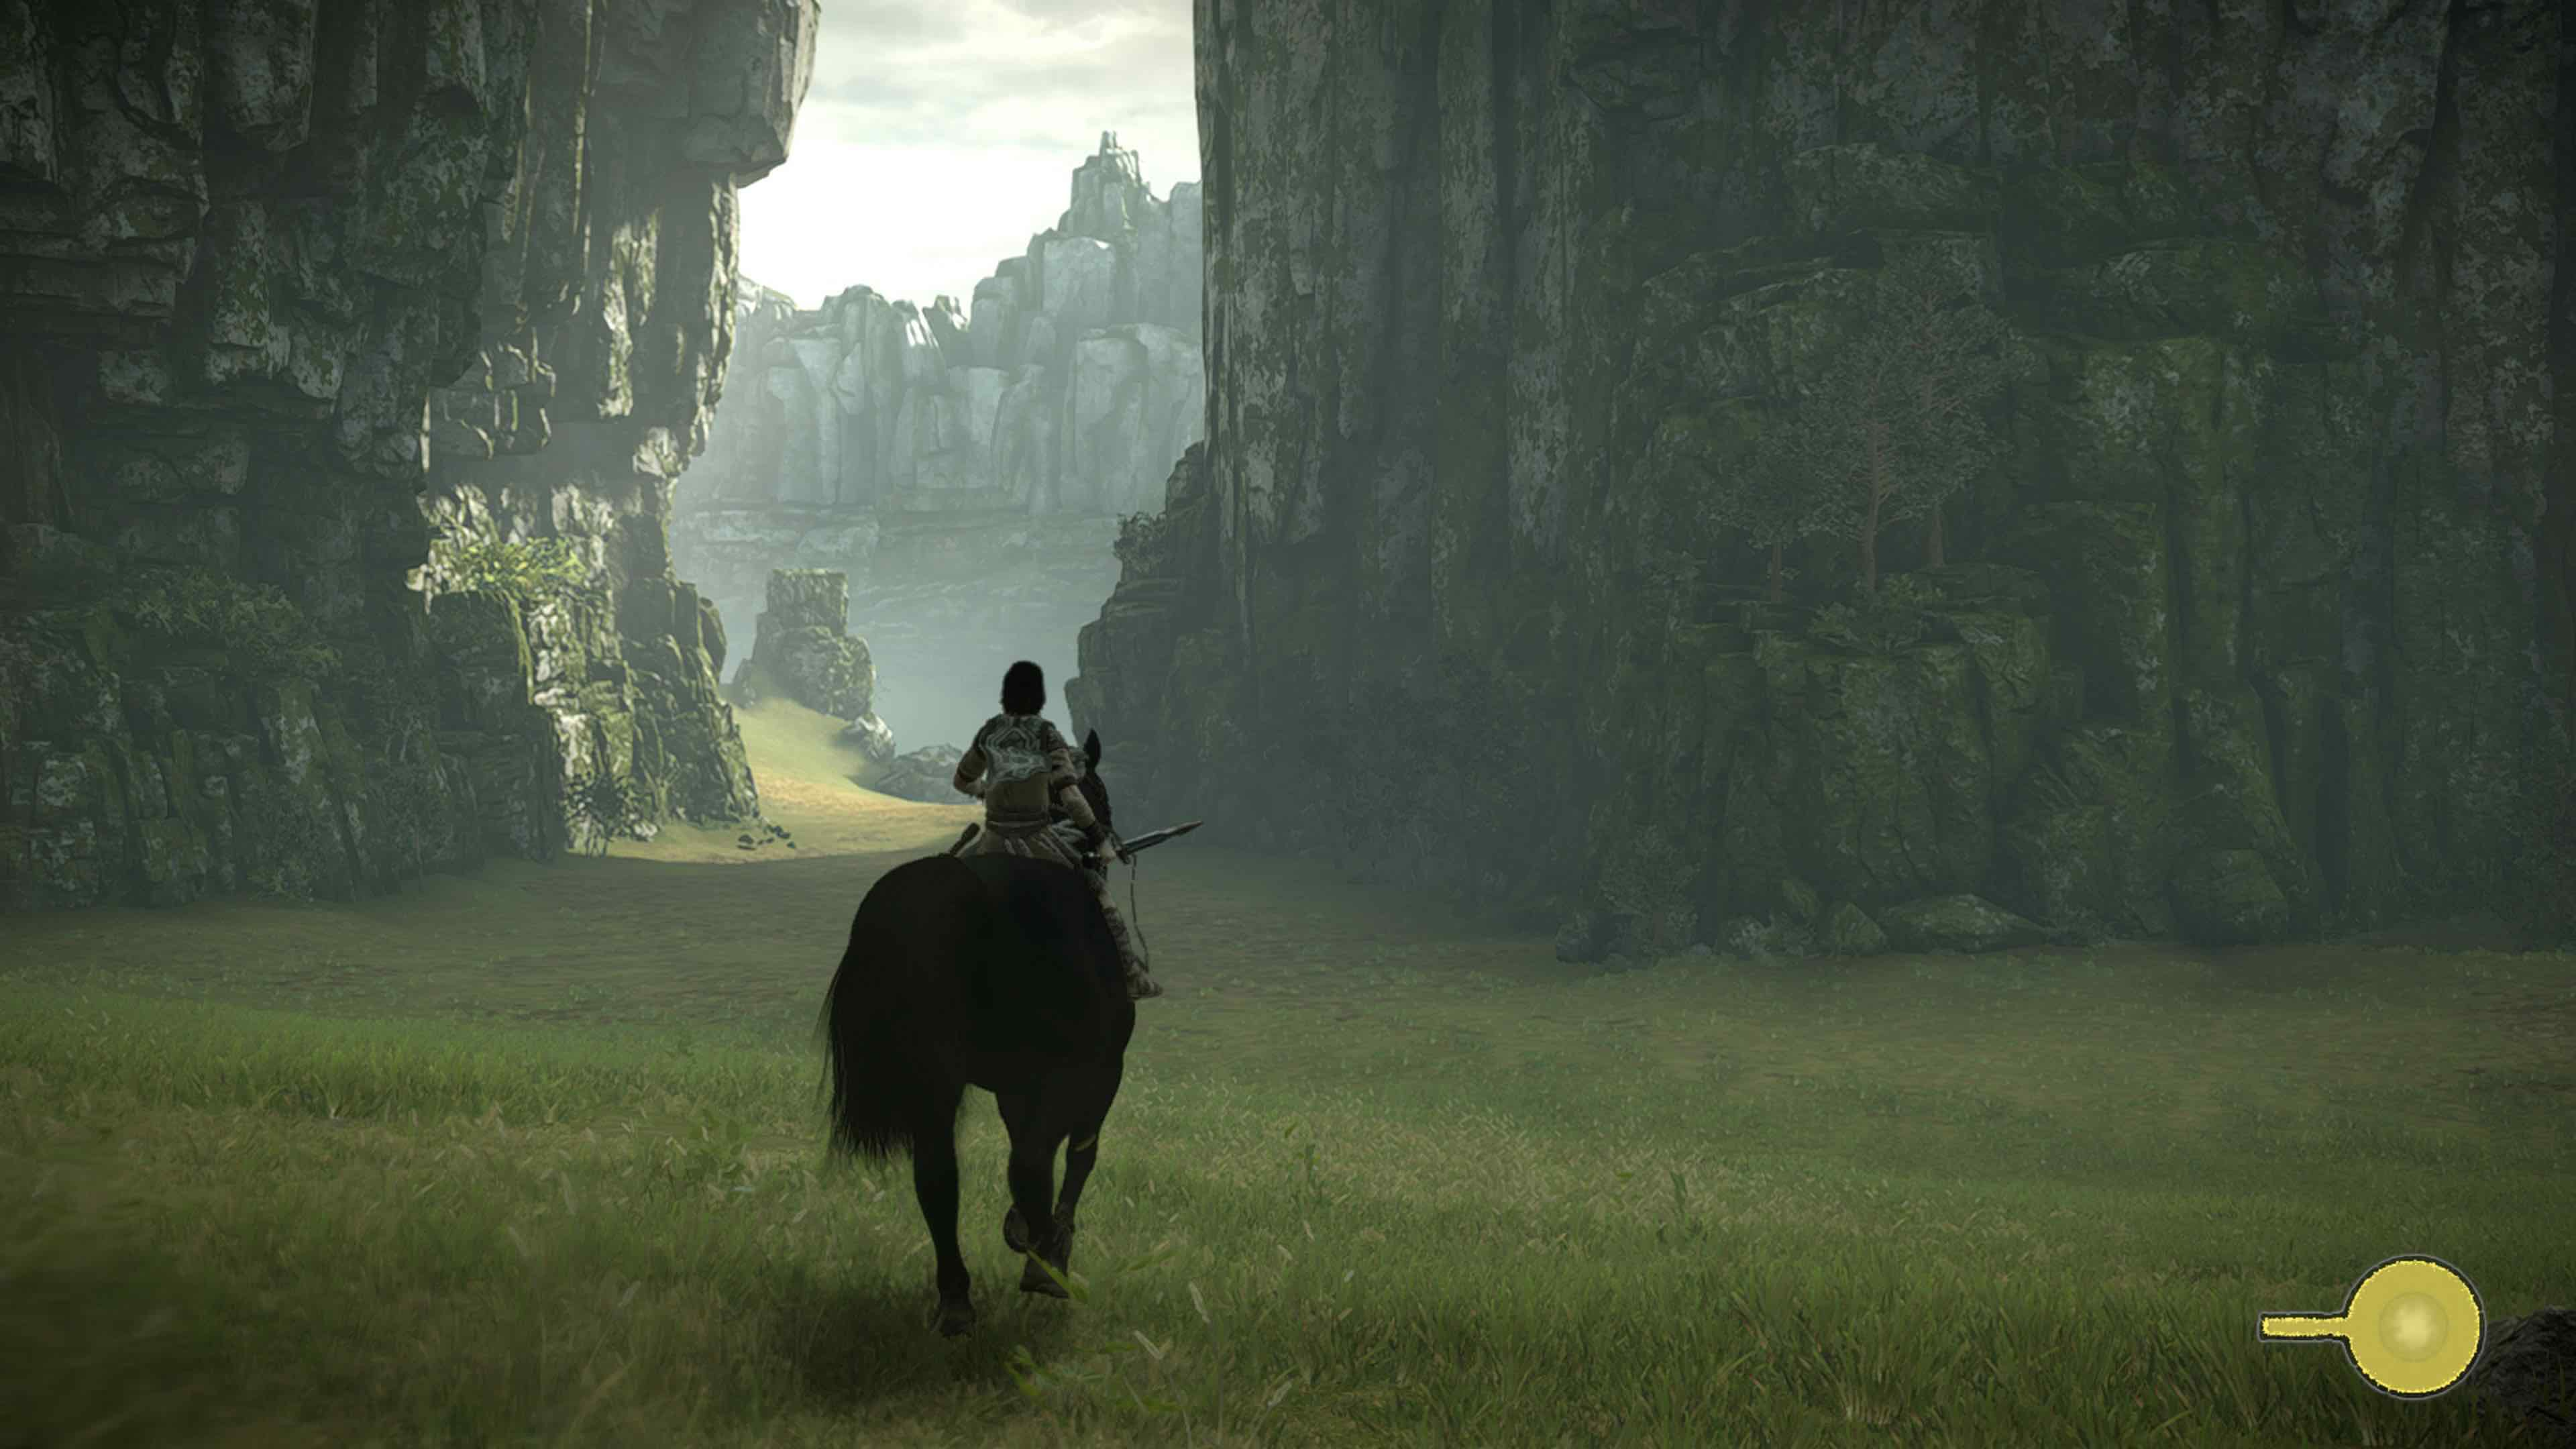 Shadow_of_the_Colossus_Coloso_8_1